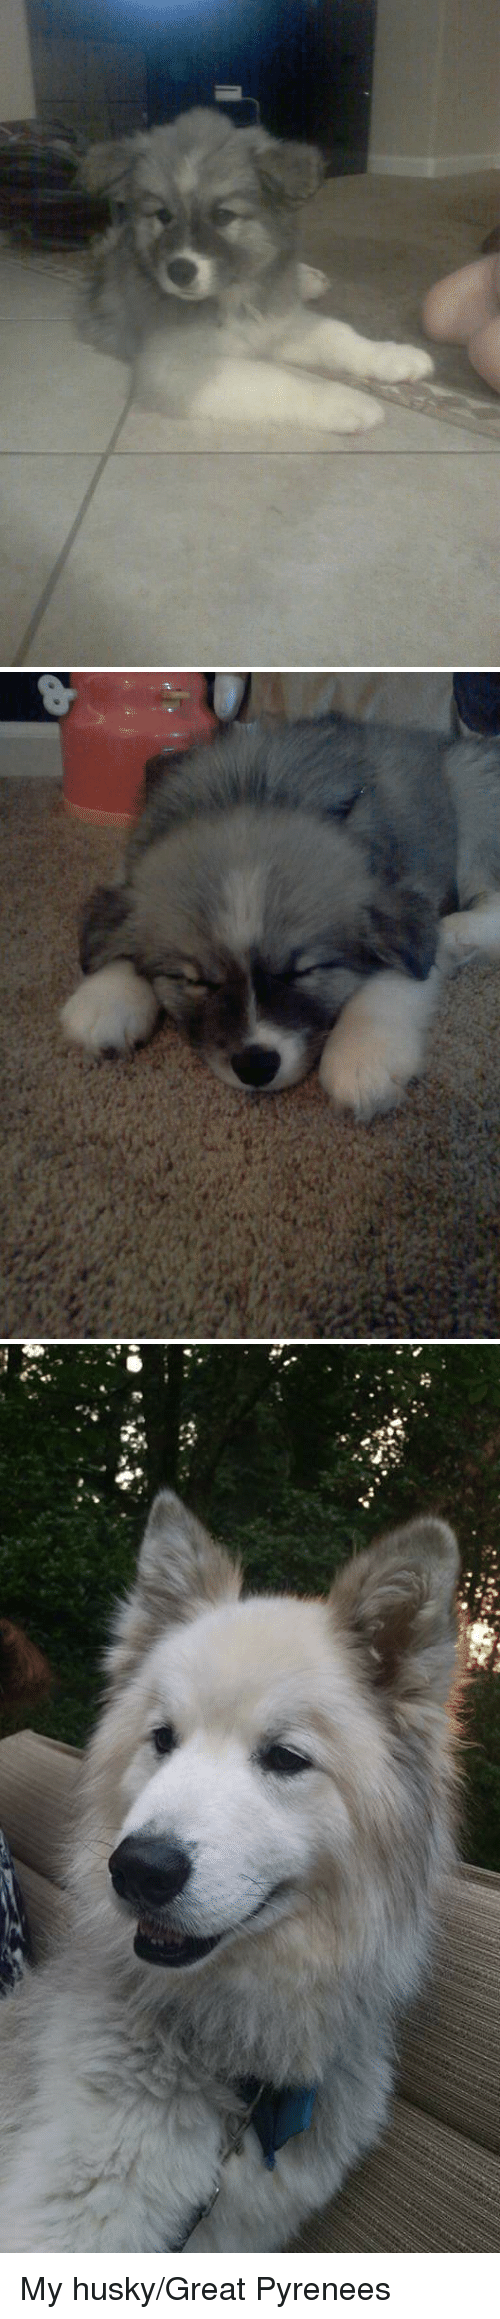 Blizzard: My husky/Great Pyrenees